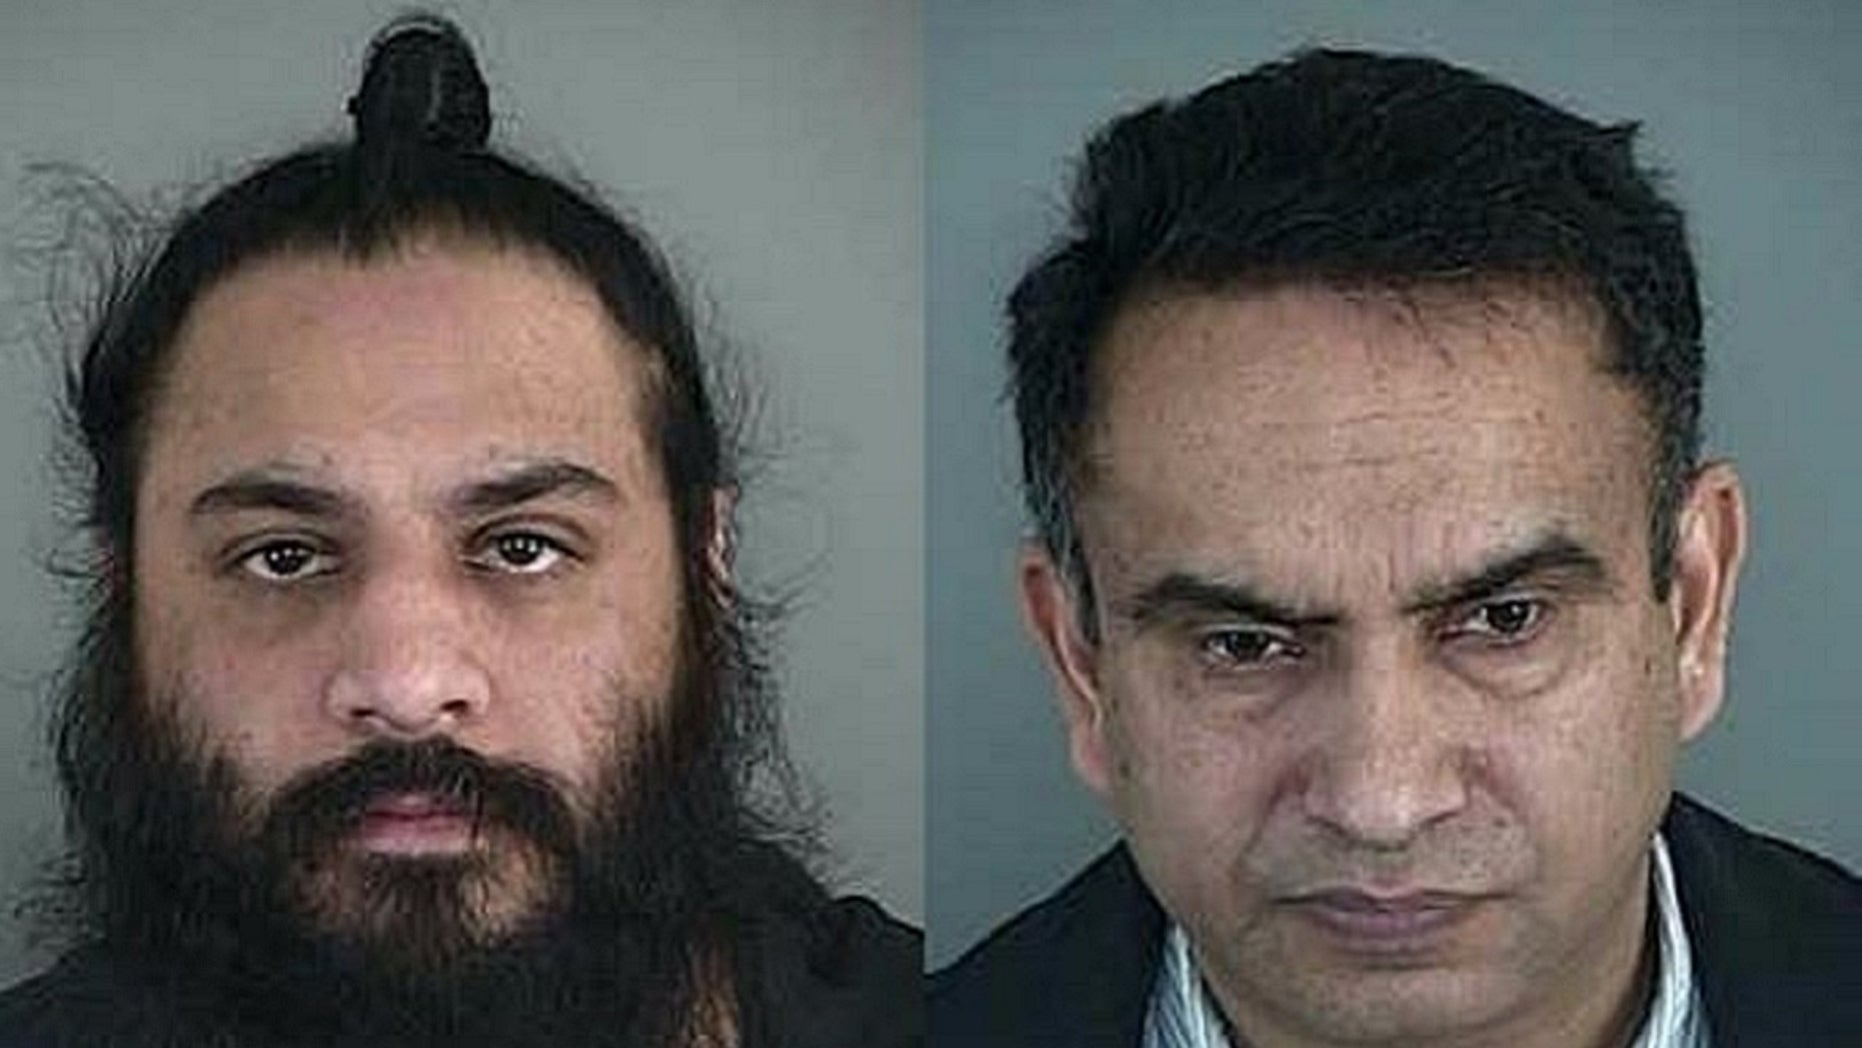 Inder Singh, left, and Satinder Singh were arrested and charged with arson for intentionally setting their own Super 8 Motel on fire, authorities say.